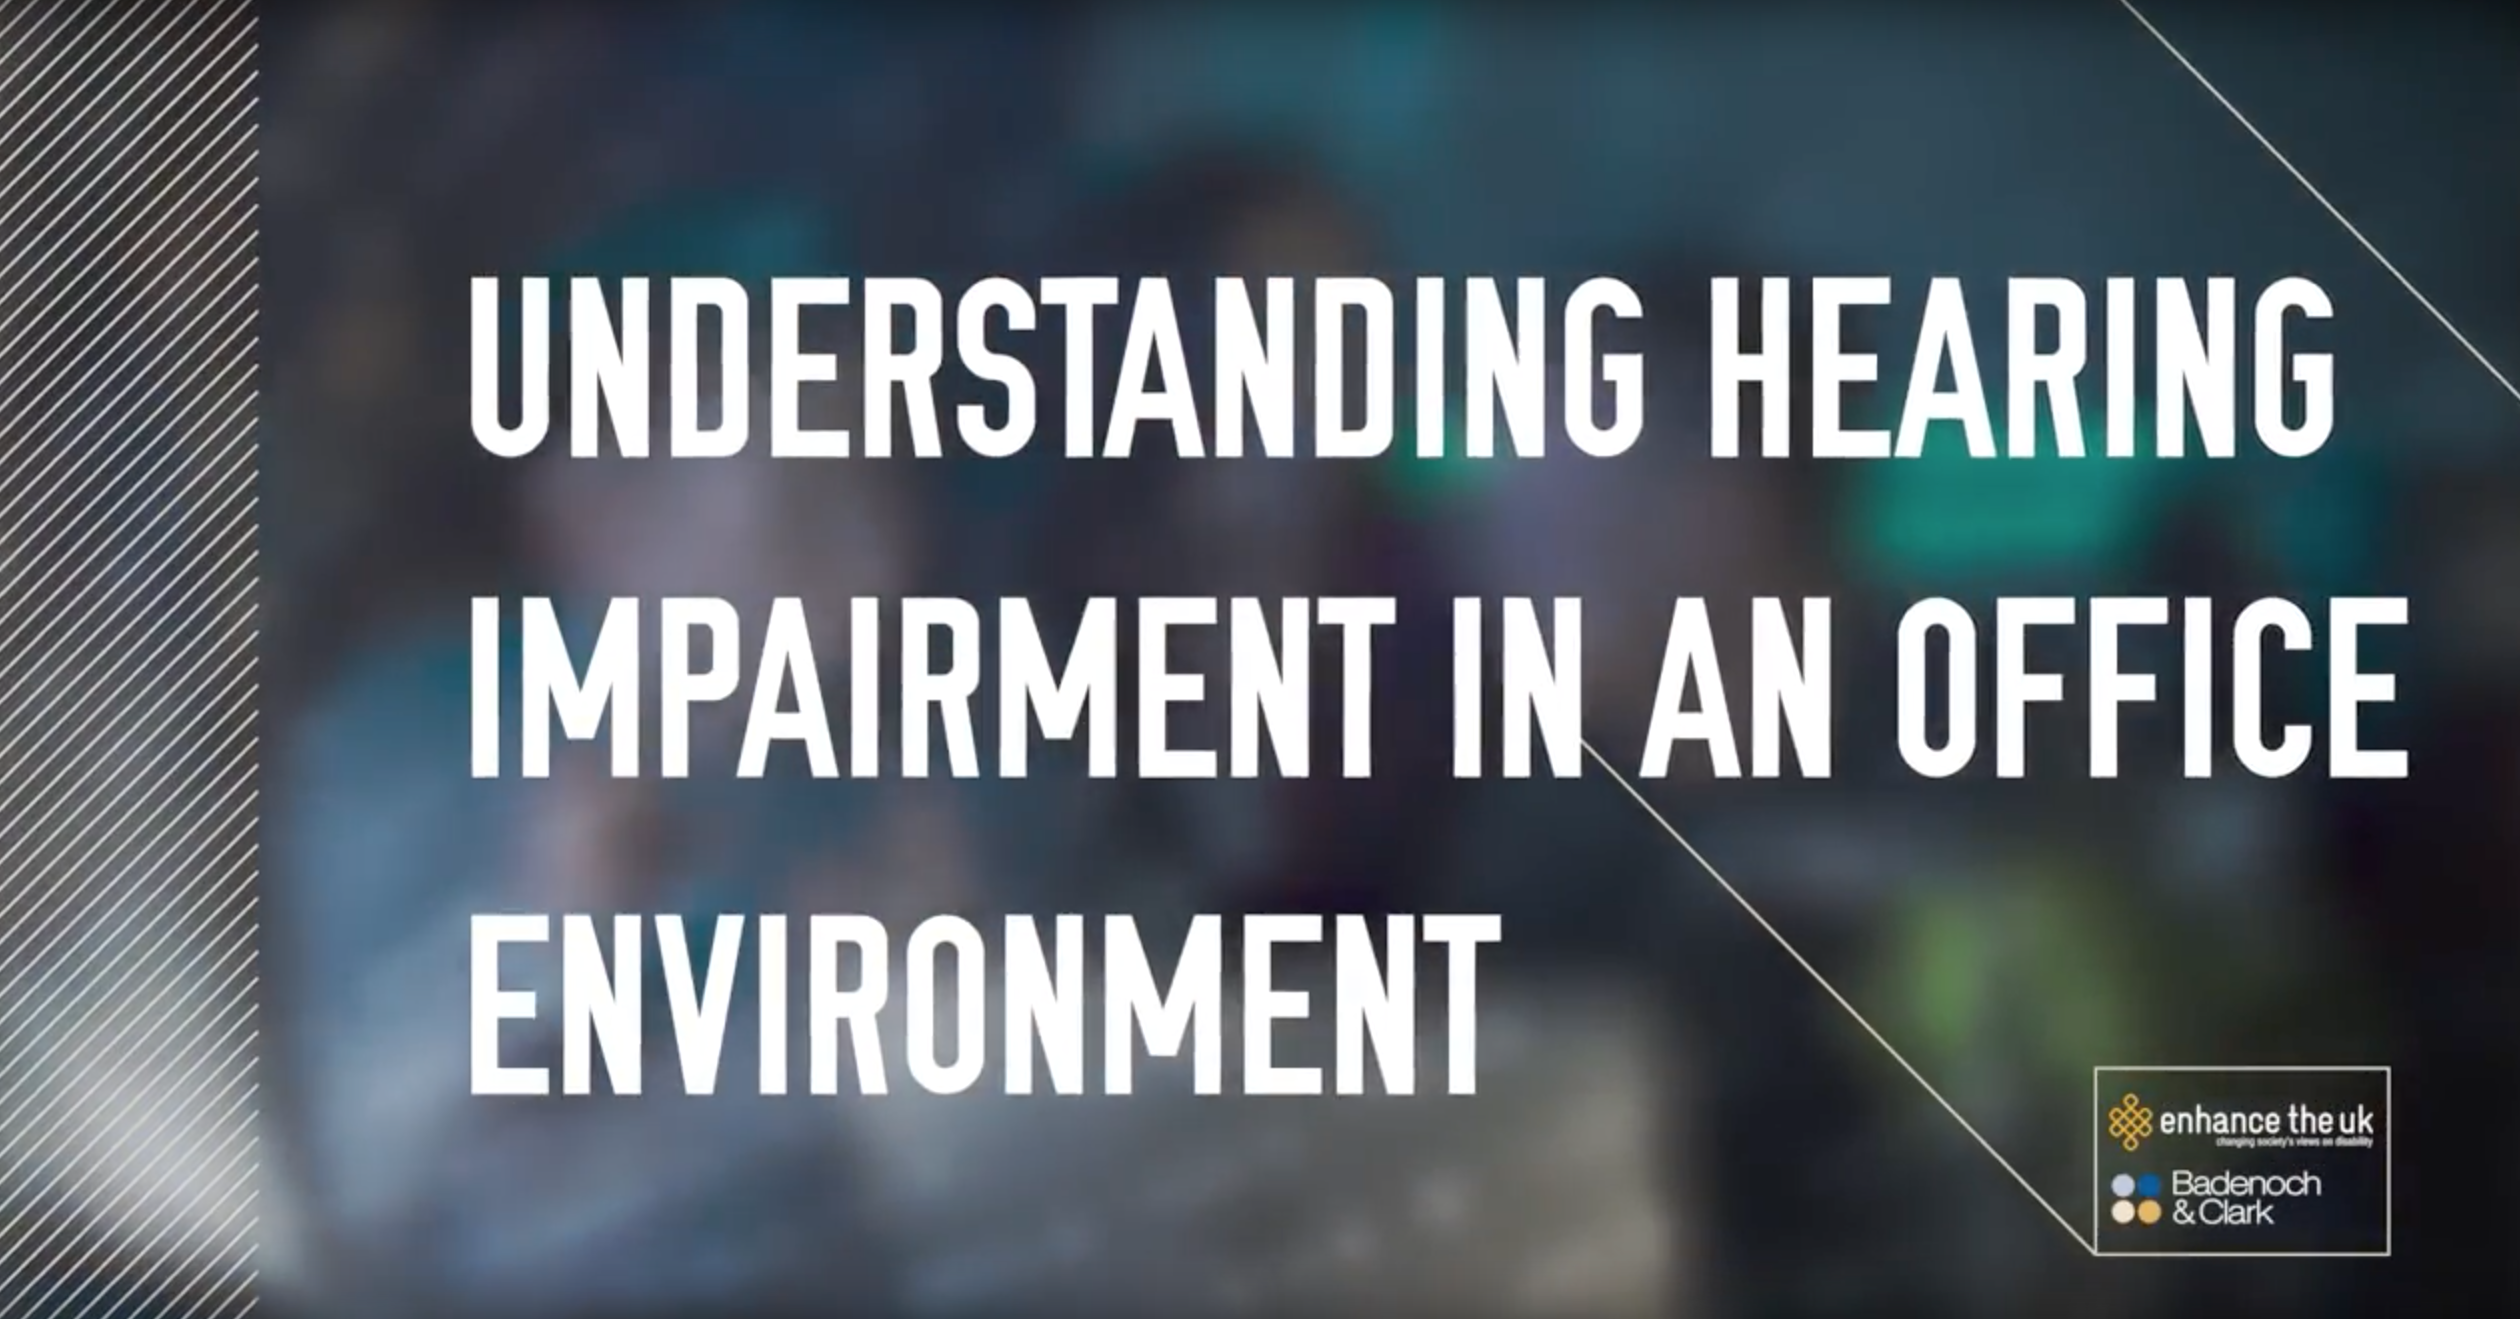 text reading 'Understanding hearing impairment in an office environment'